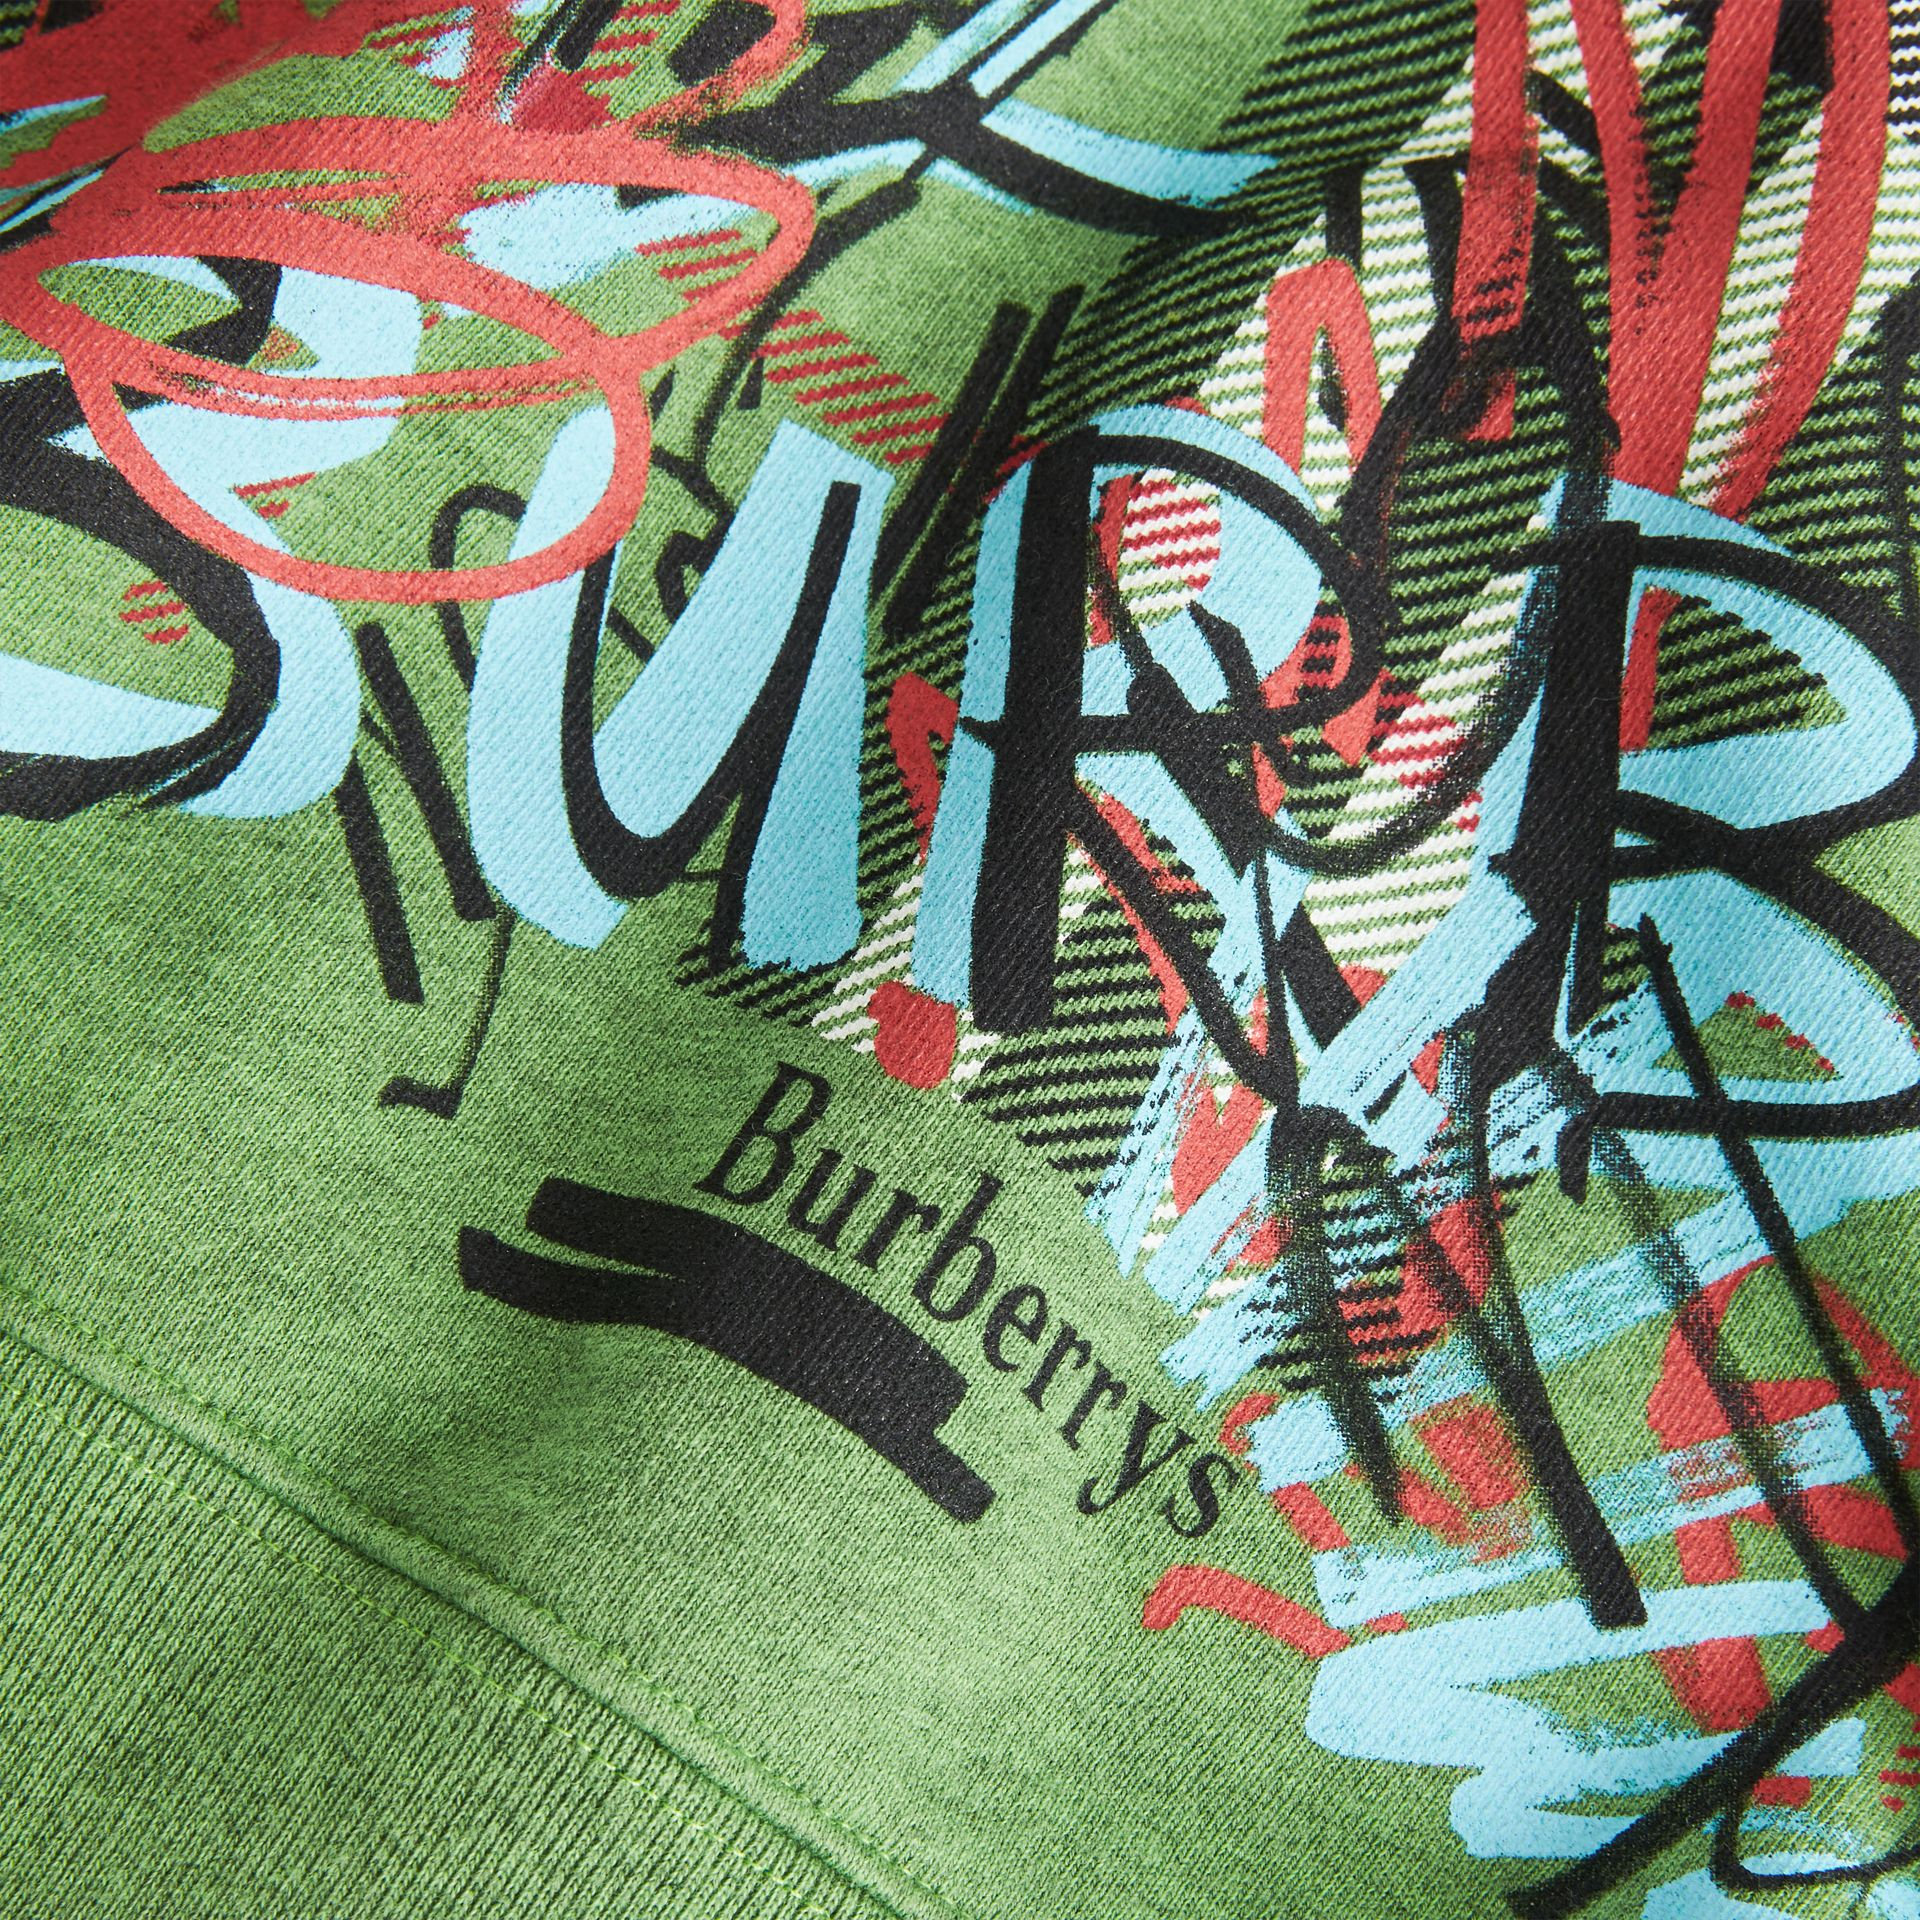 Graffiti Scribble Check Print Cotton Dress in Lime Green | Burberry United Kingdom - gallery image 1